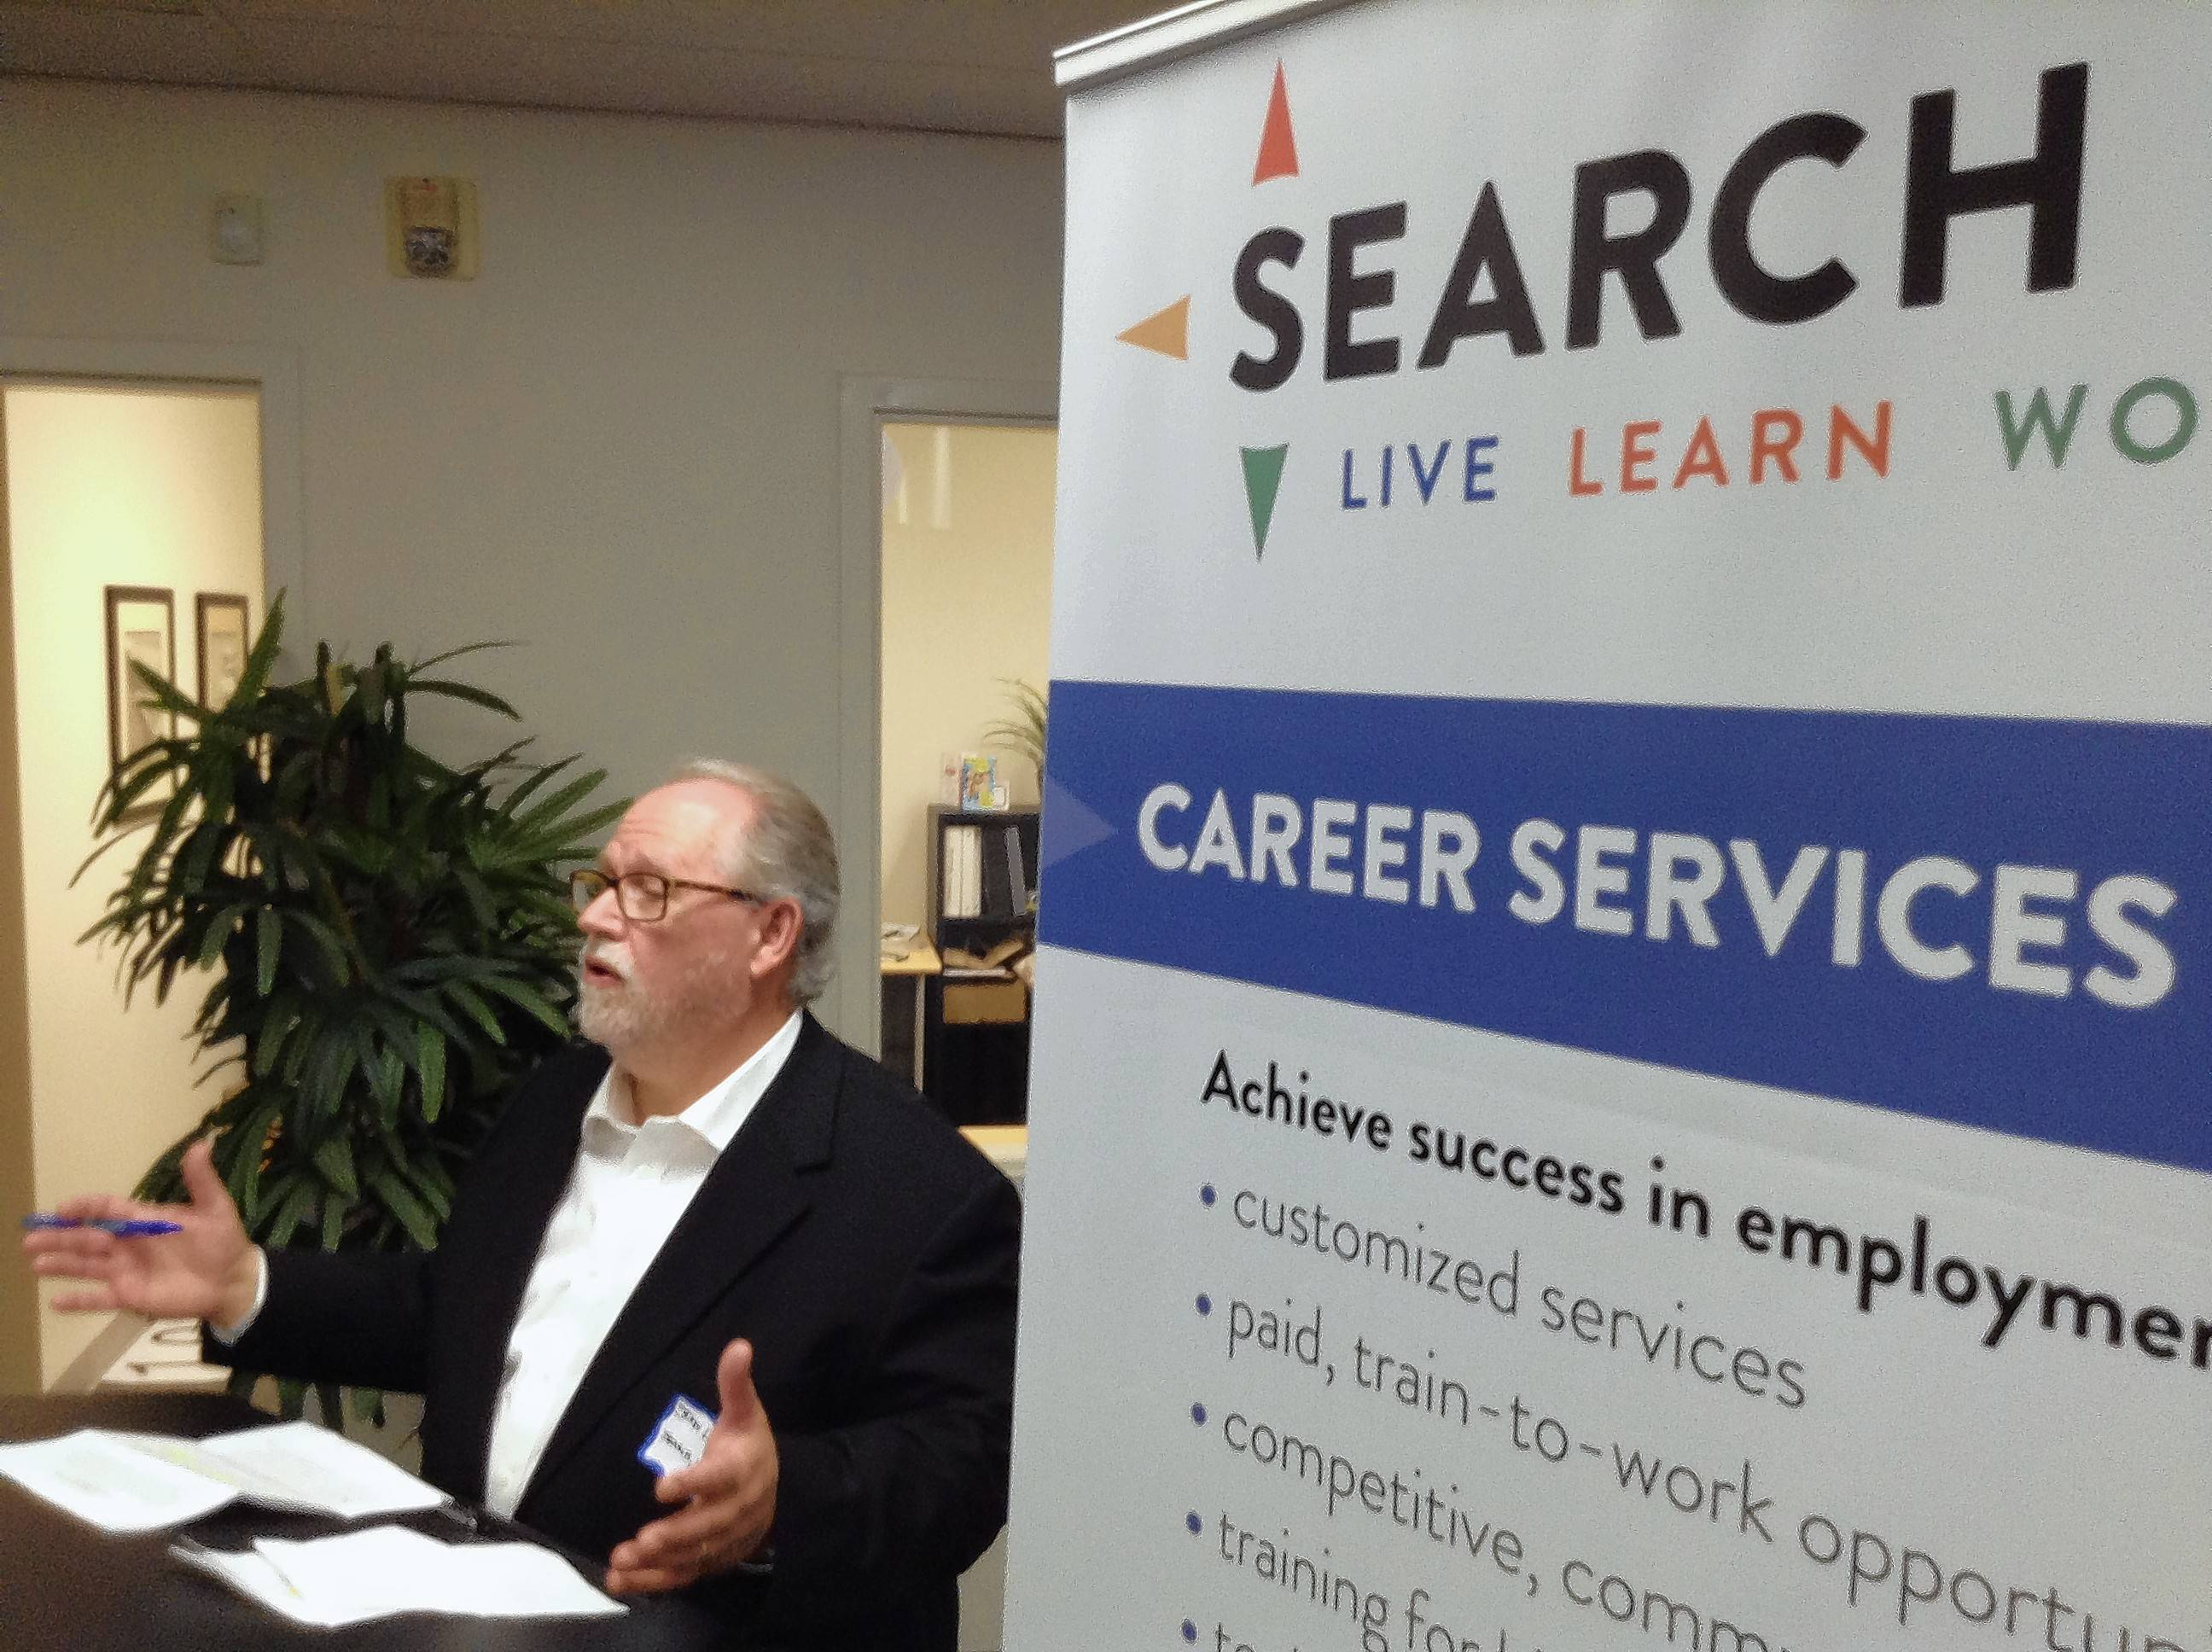 John Lipscomb, CEO of Search Inc., speaks before the ribbon cutting for a 63,000-square-foot warehouse in Des Plaines for subsidiary firm Planet Access Co. Search provides services to those with developmental disabilities, including job training and placement.